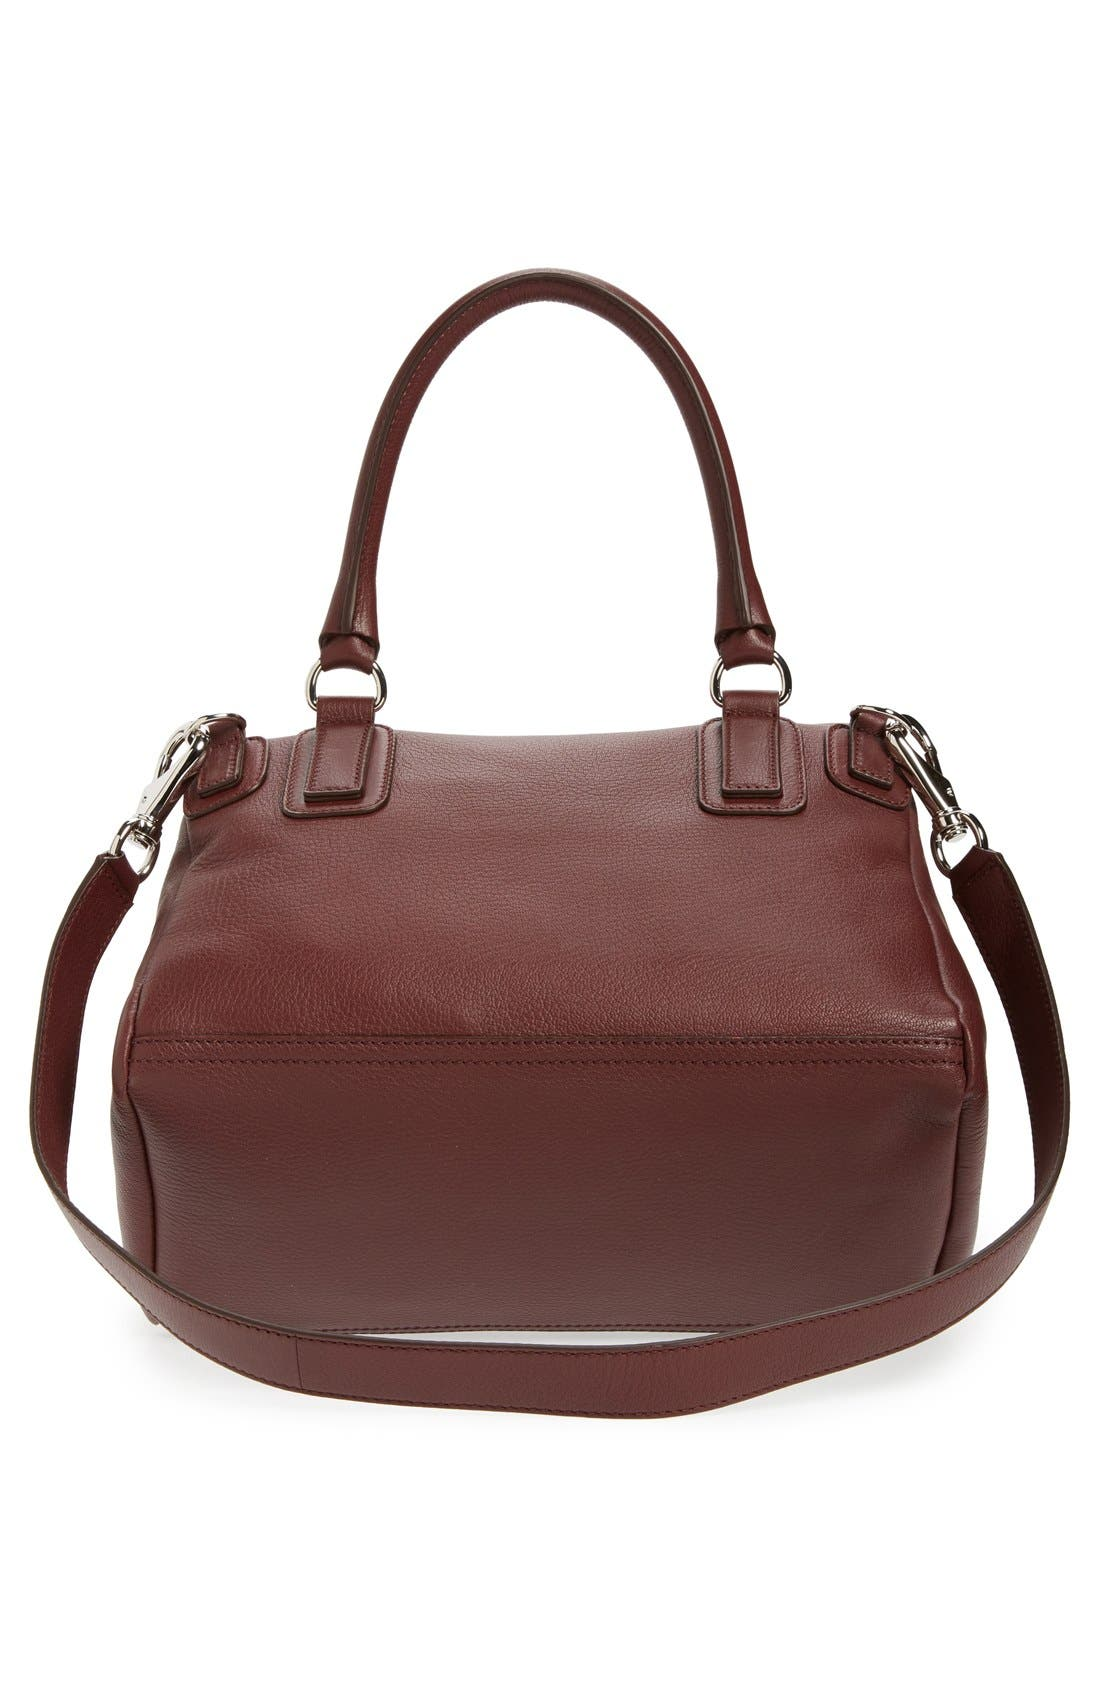 Alternate Image 3  - Givenchy 'Medium Pandora' Sugar Leather Satchel